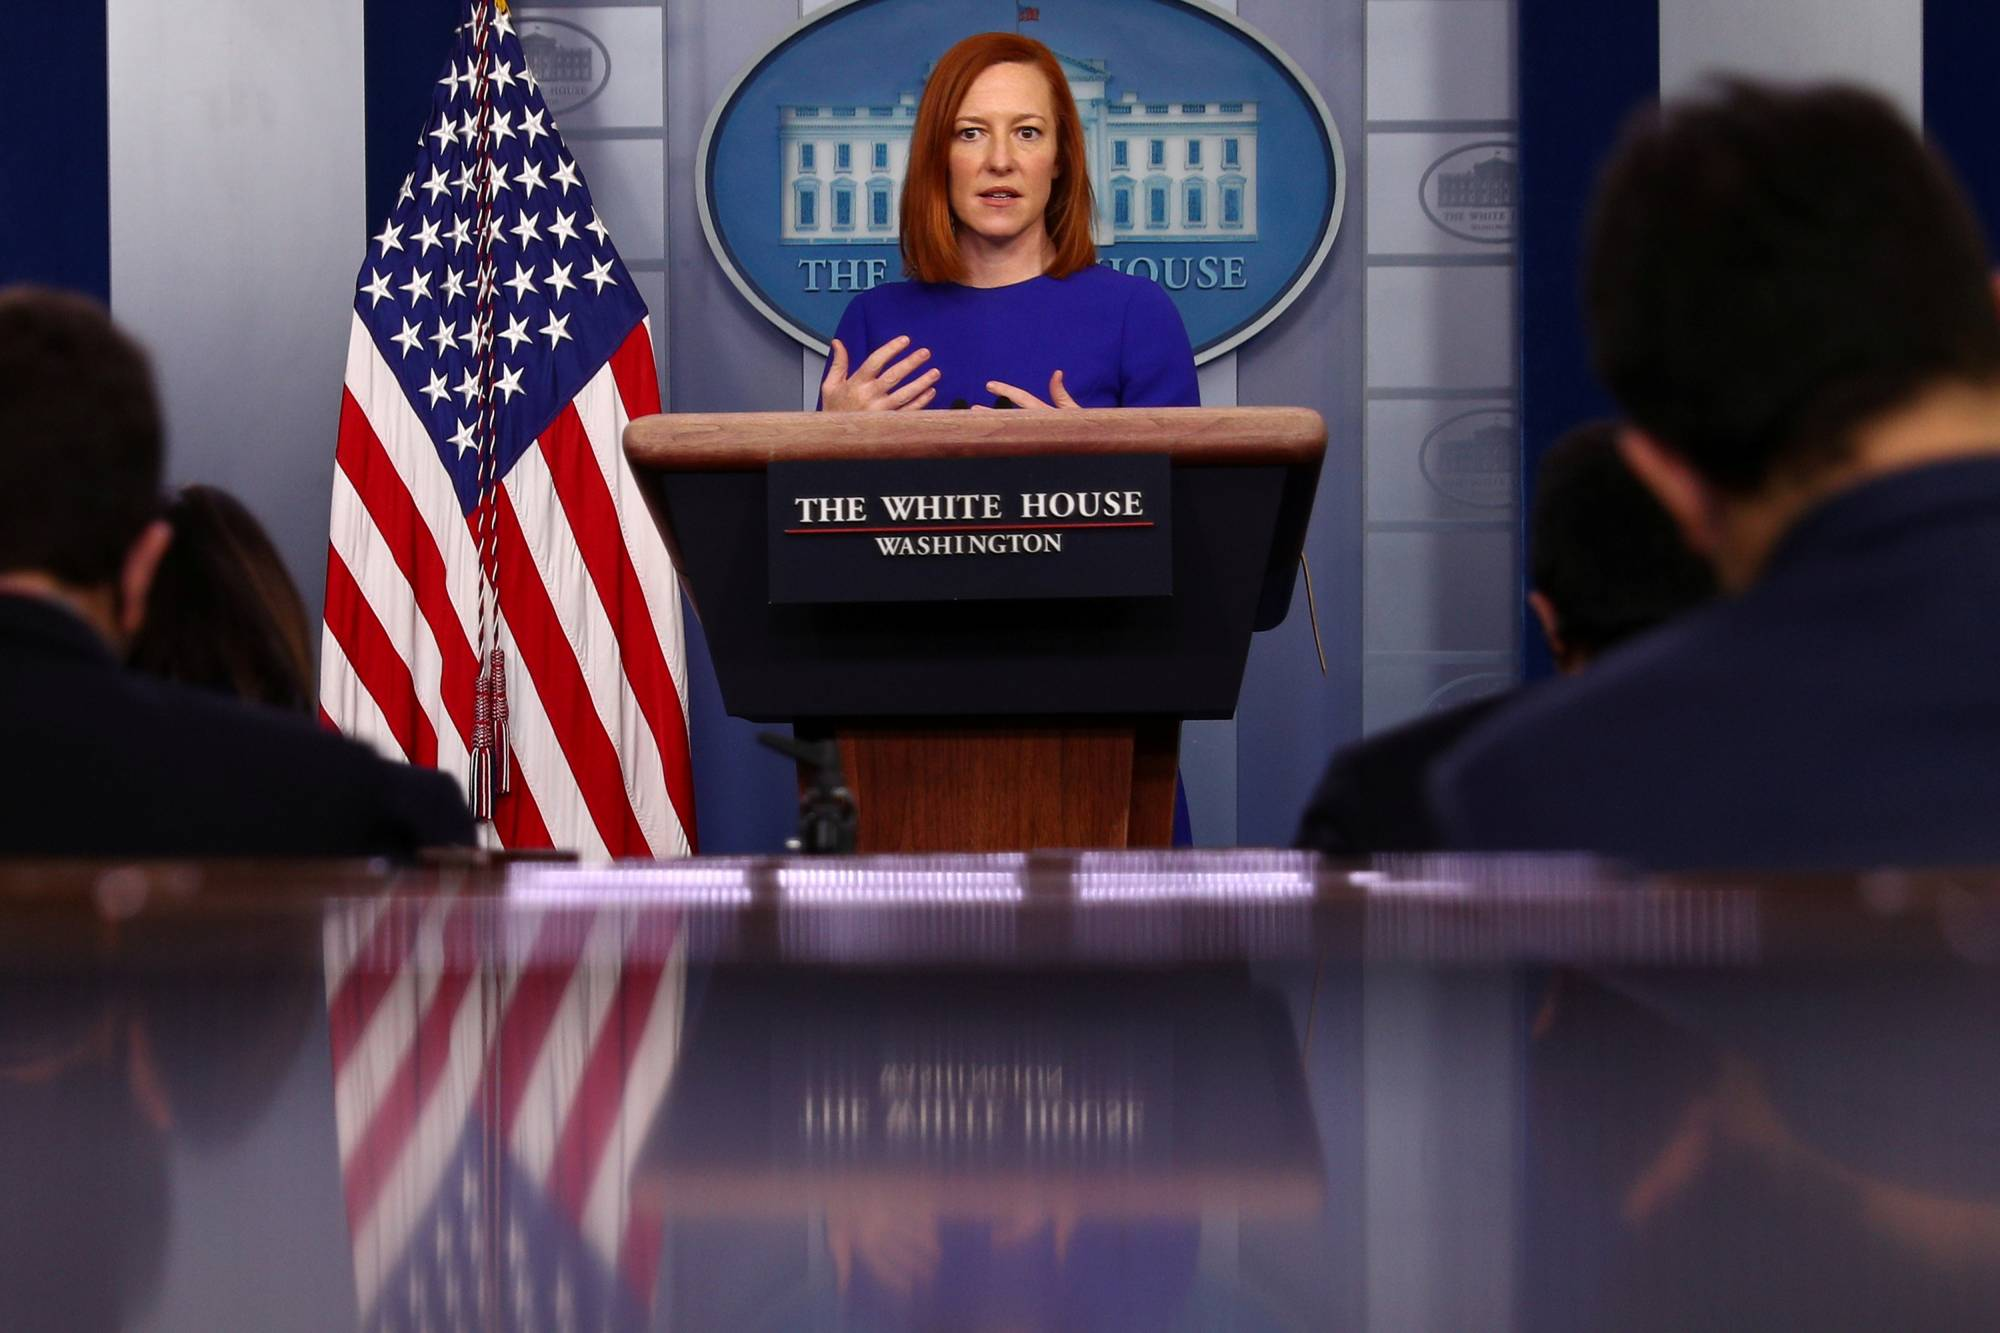 White House press secretary Jen Psaki delivers remarks during a briefing at the White House on Tuesday. | REUTERS